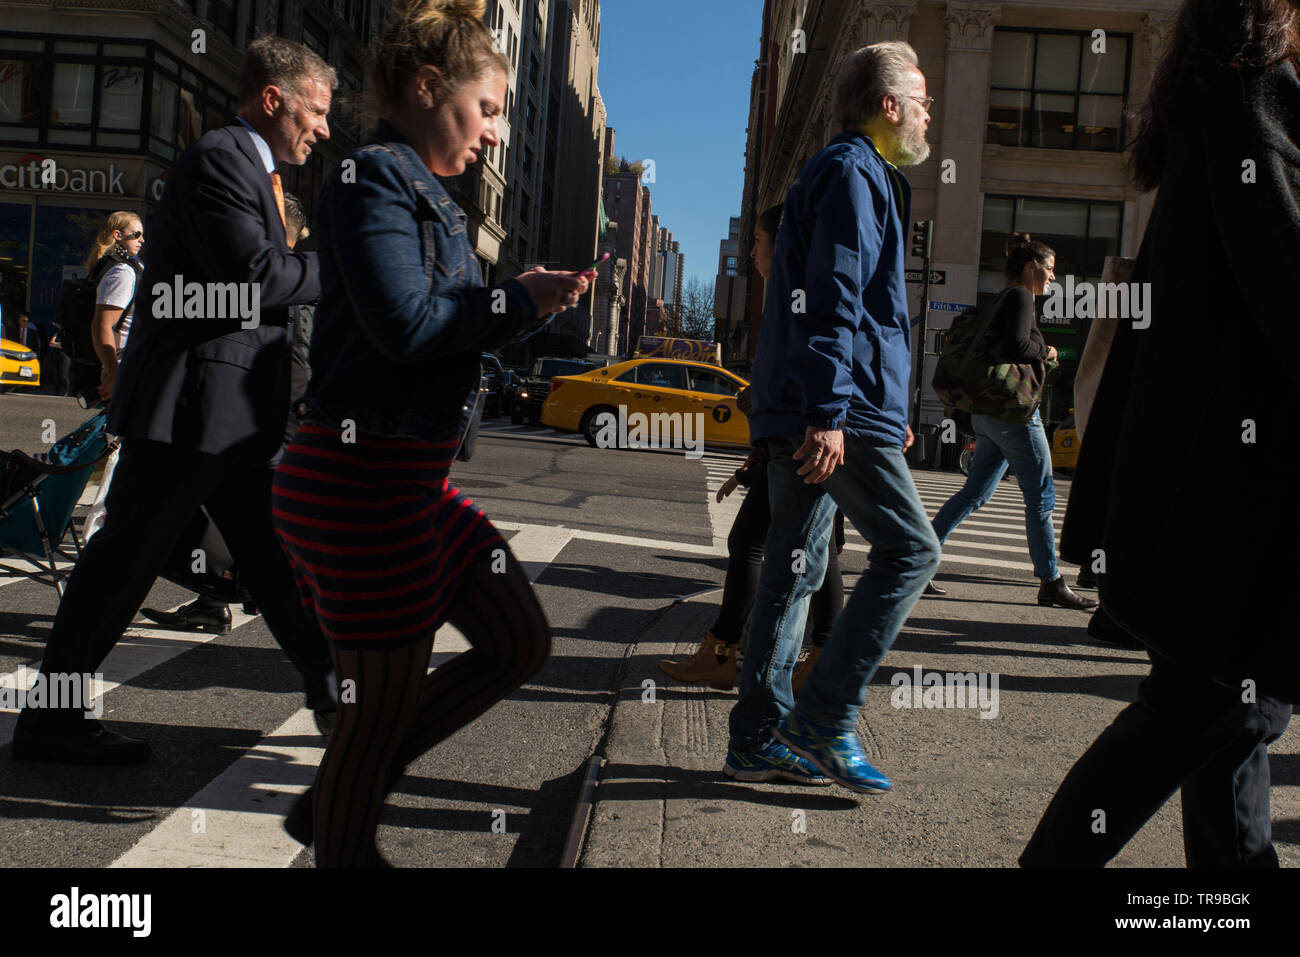 SMS-Nachrichten beim Überqueren der Straße könnten in NYC bald illegal werden. // Texting while crossing the street might soon become illegal in NYC / Stock Photo